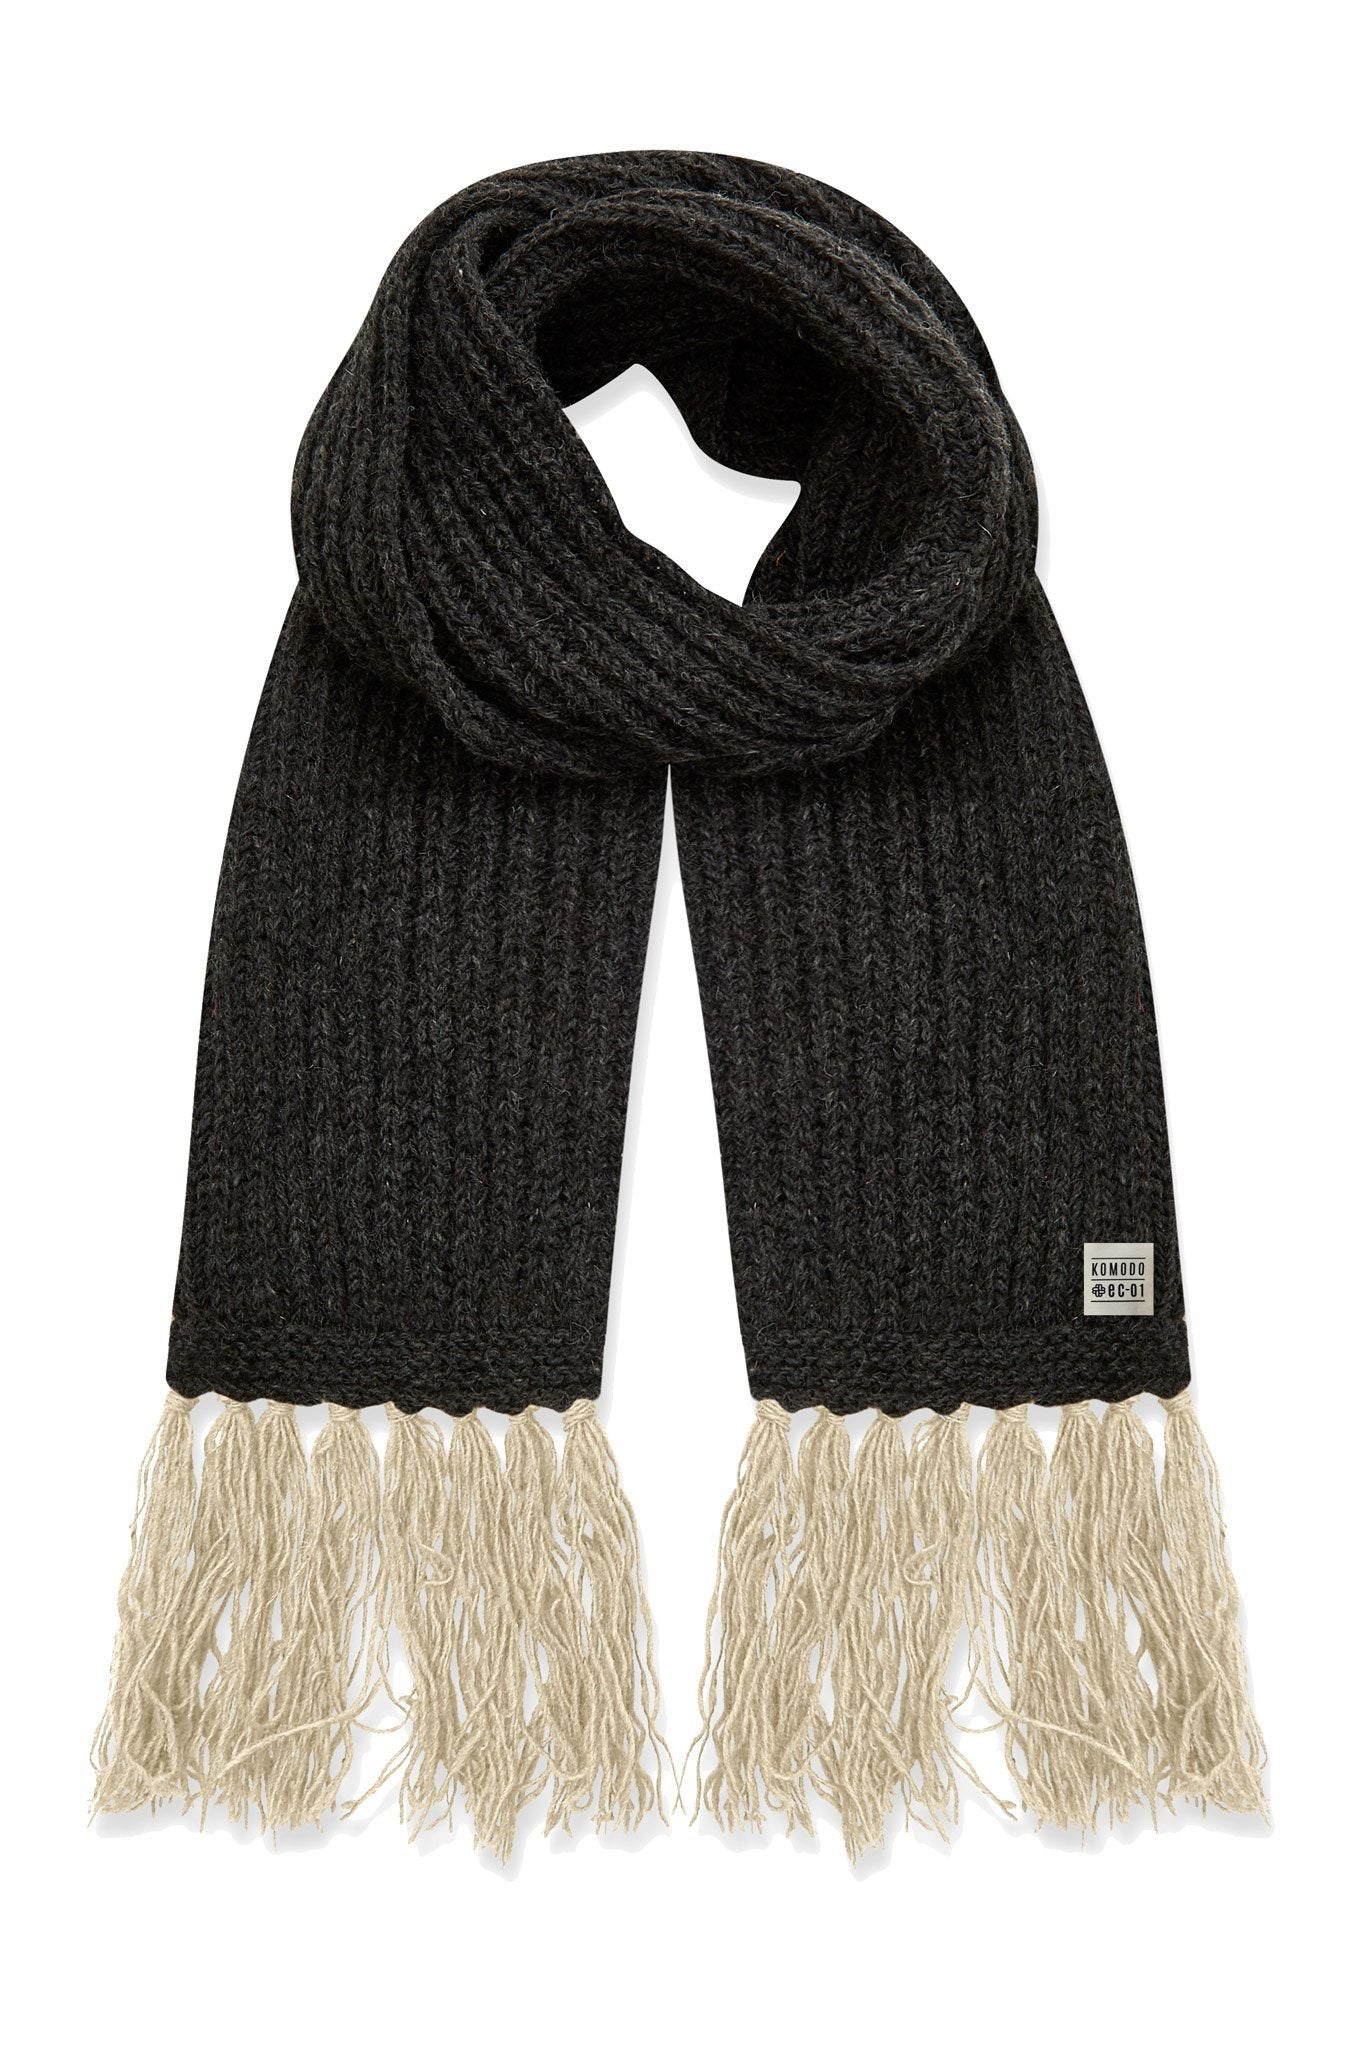 LIZZIE Recycled Wool Scarf Coal - Komodo Fashion